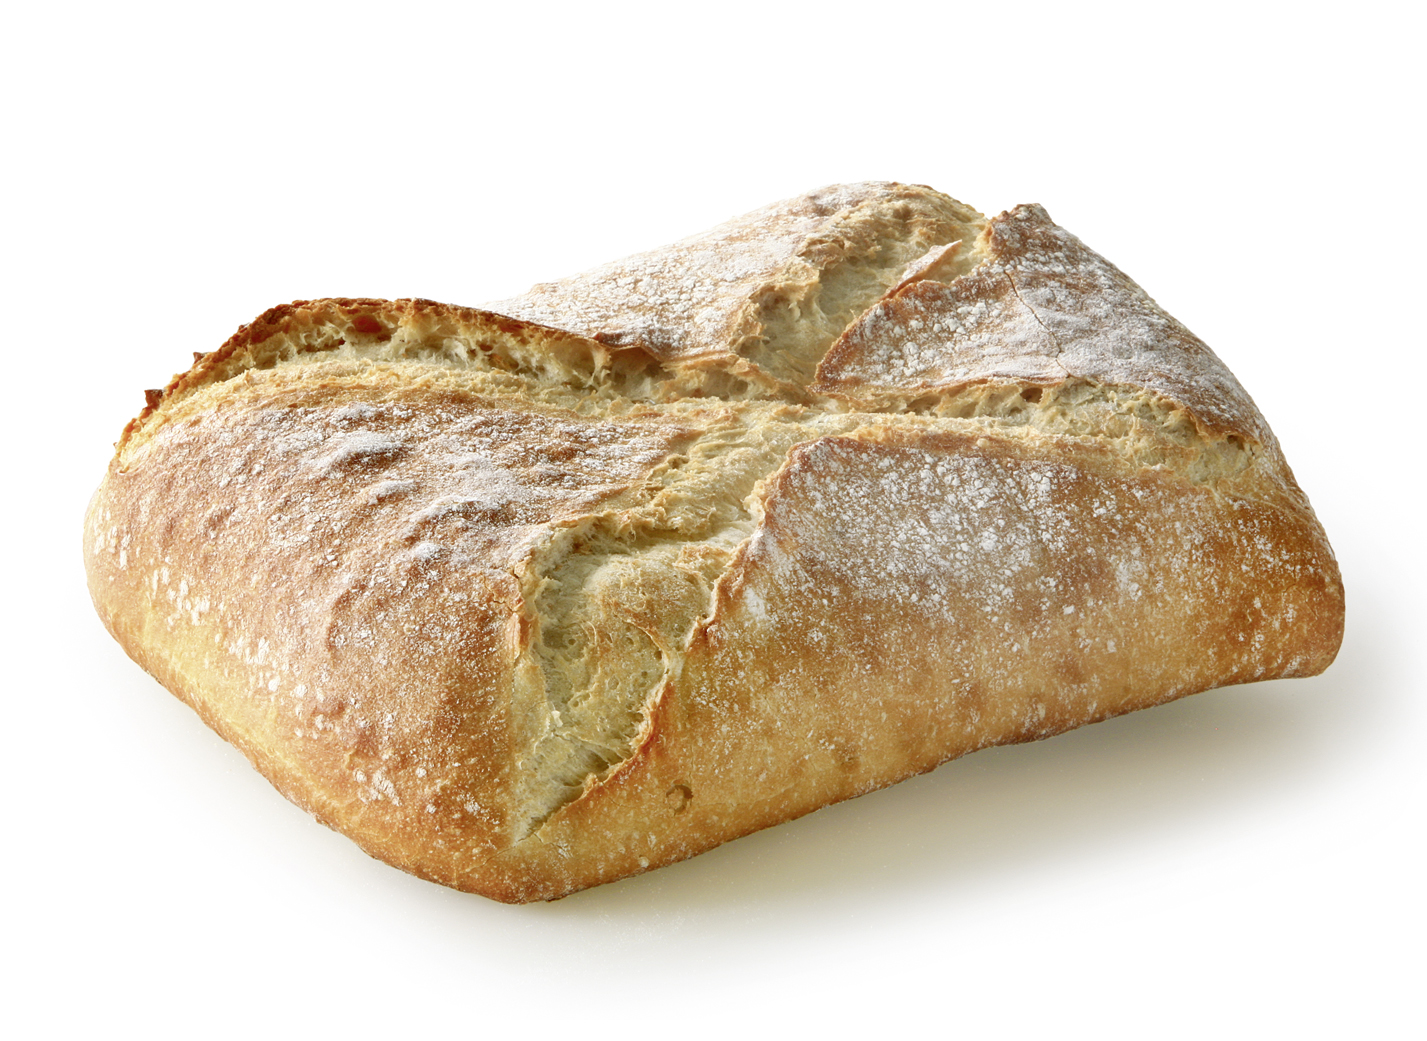 Pane Bianco - Wheat bread in square form with distinctive cross cut measure: approx. 24 x 17 cm